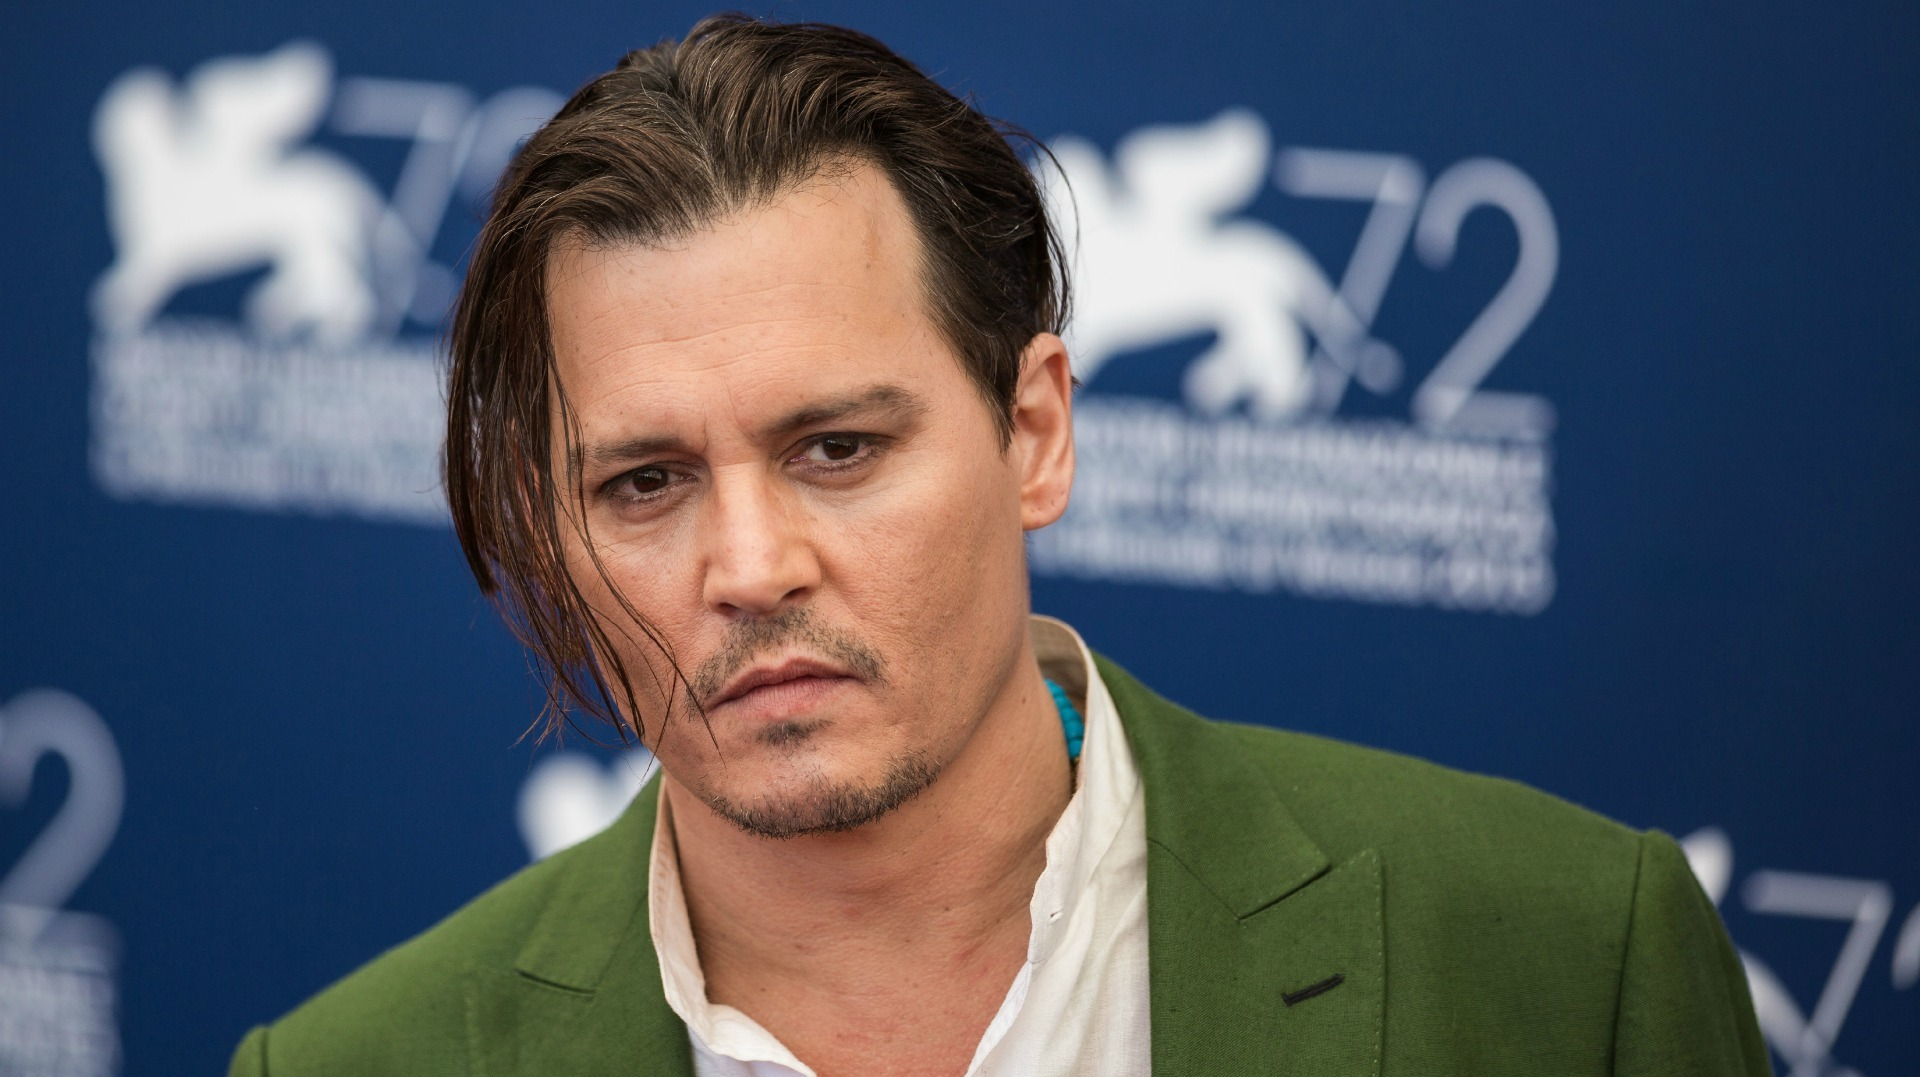 72nd Venice Film Festival - 'Black Mass' - Photocall Featuring: Johnny Depp Where: Venice, Italy When: 04 Sep 2015 Credit: WENN.com **Not available for publication in France, Netherlands, Belgium, Spain, Italy**